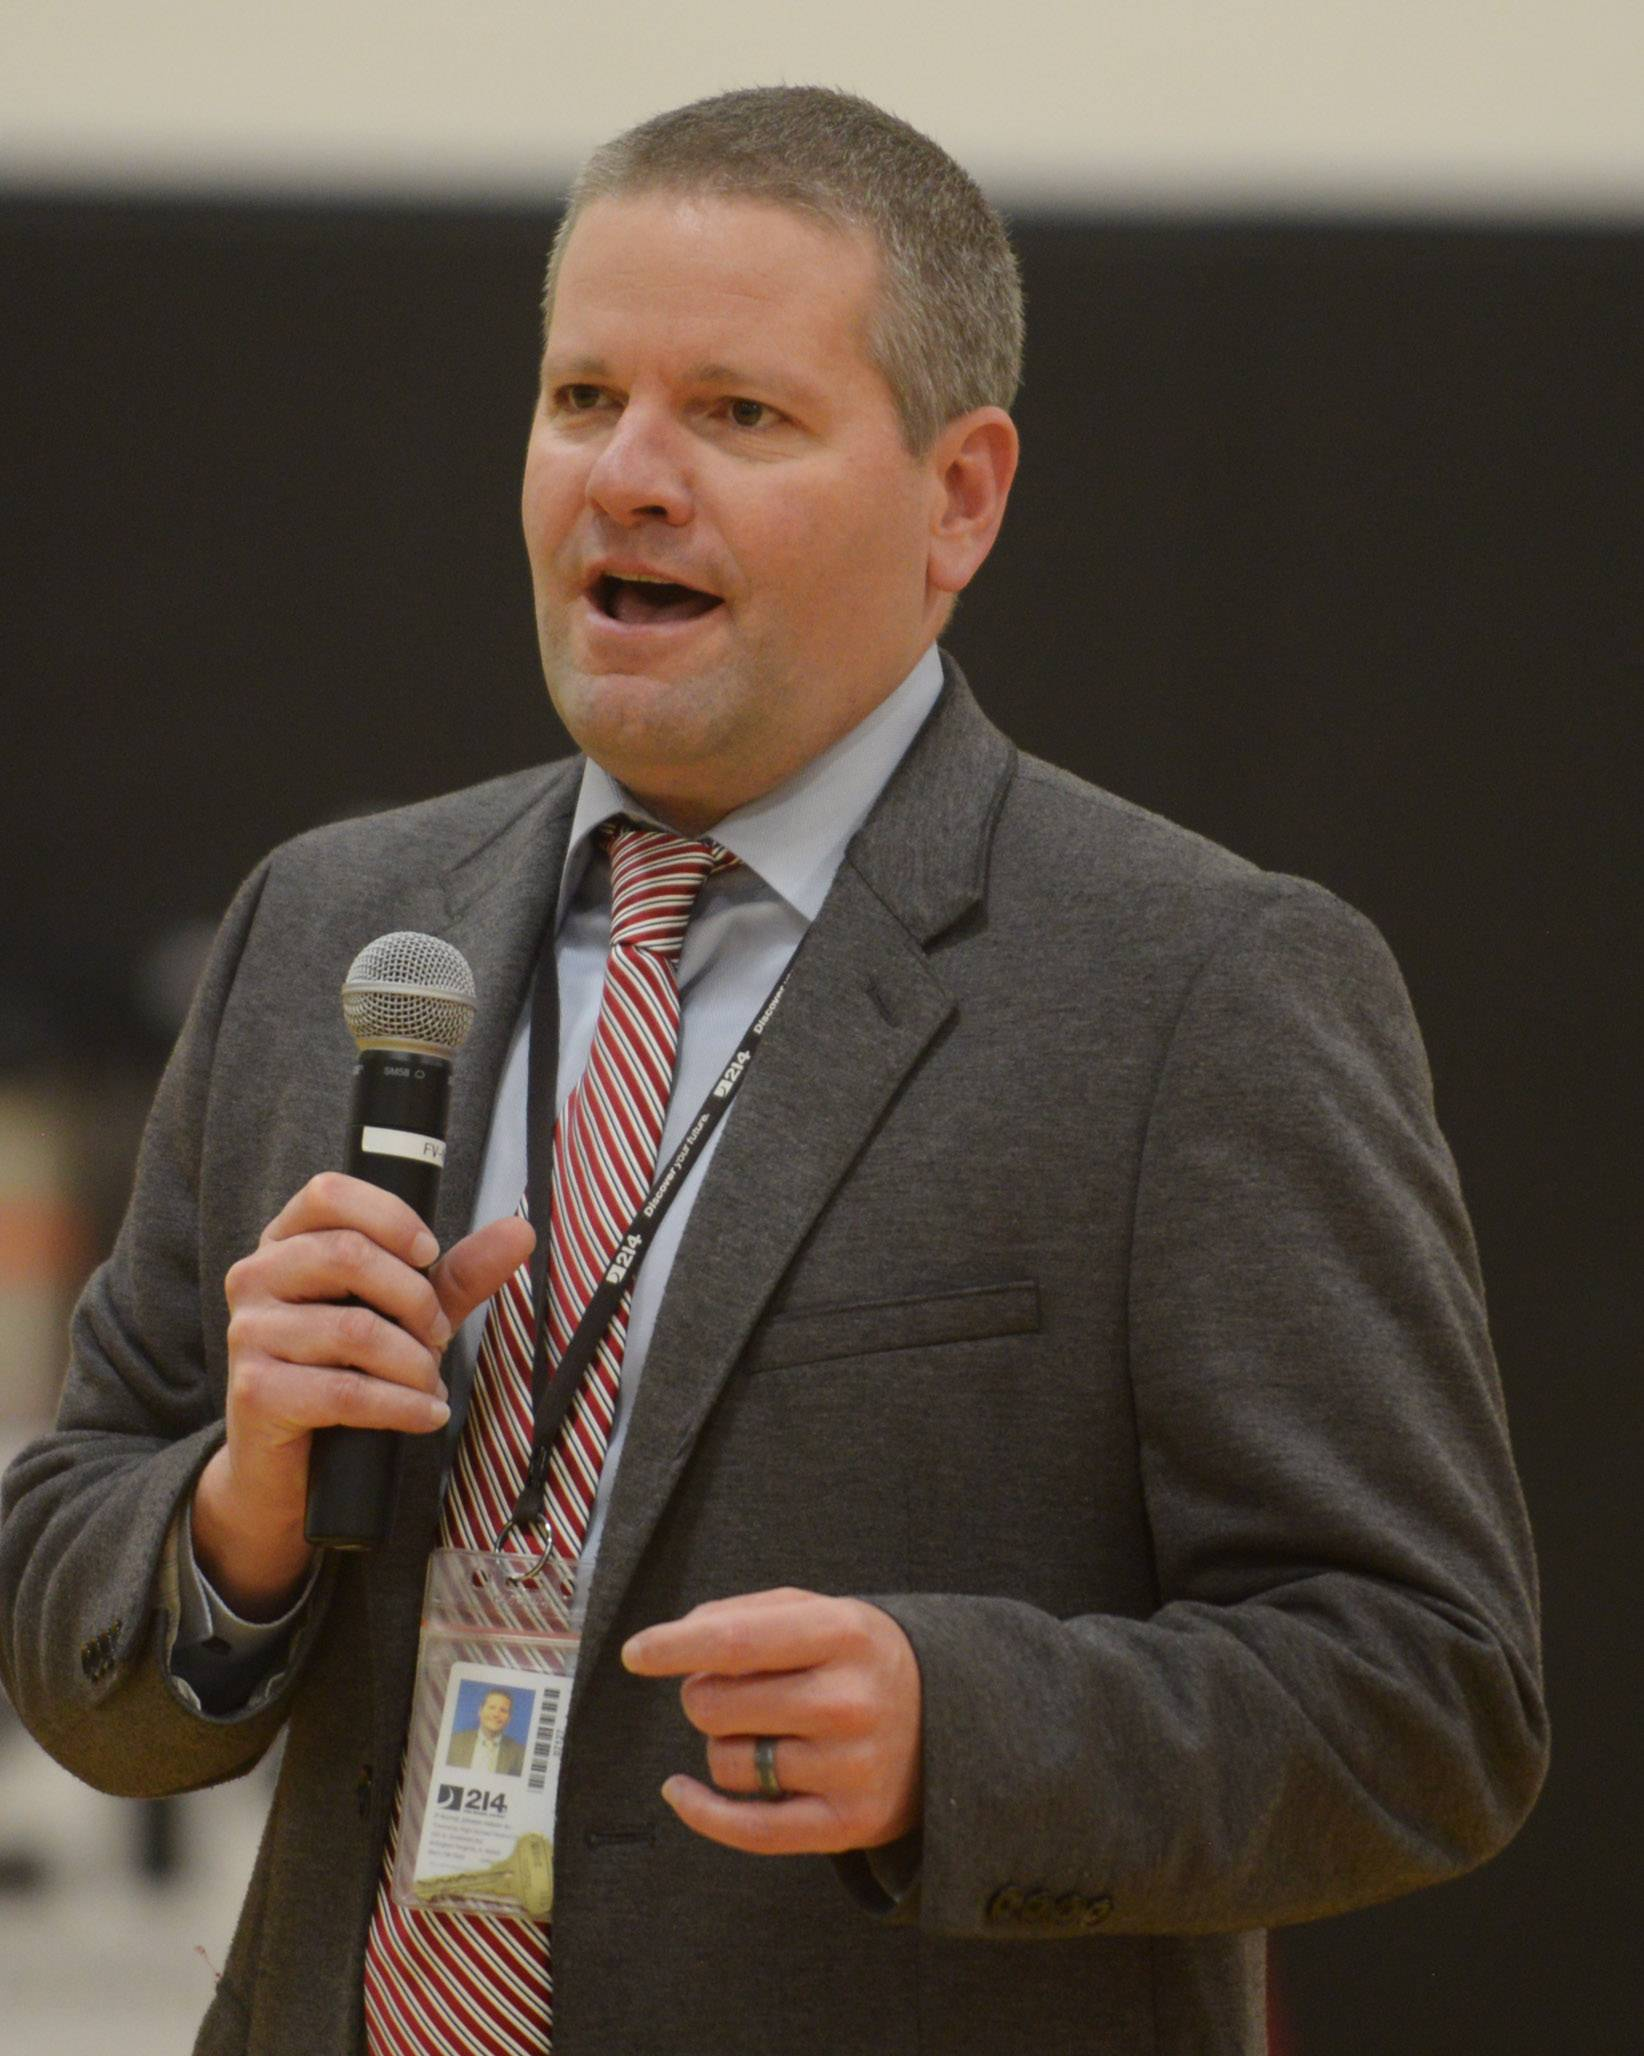 District 214's Schuler named national superintendent of the year